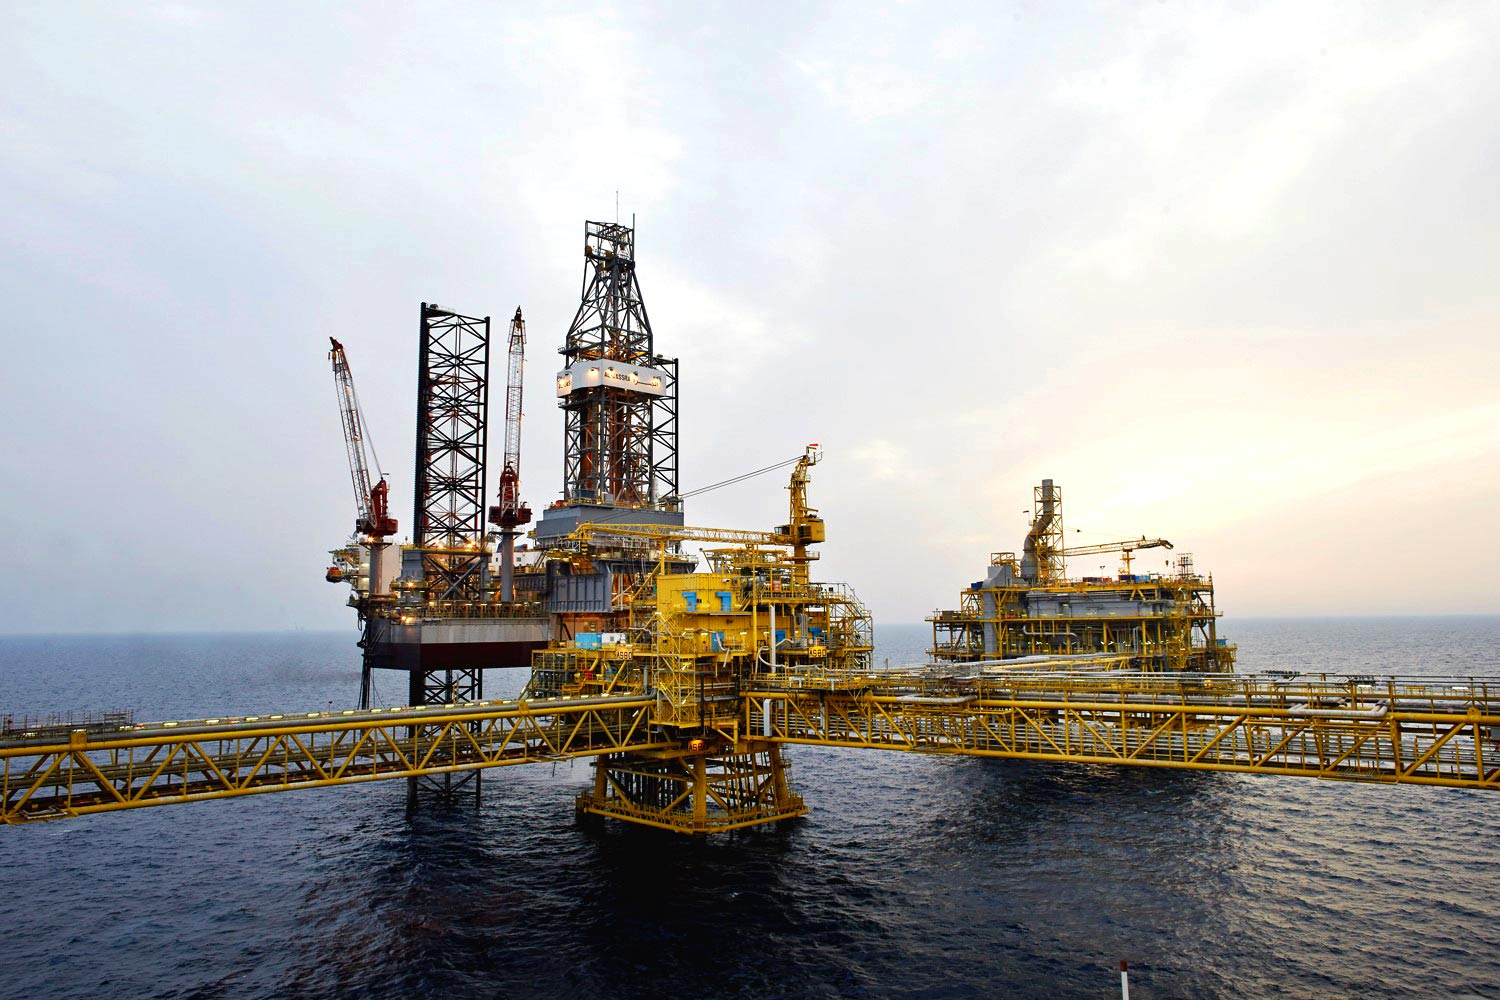 HPHT Offshore Oil Rig